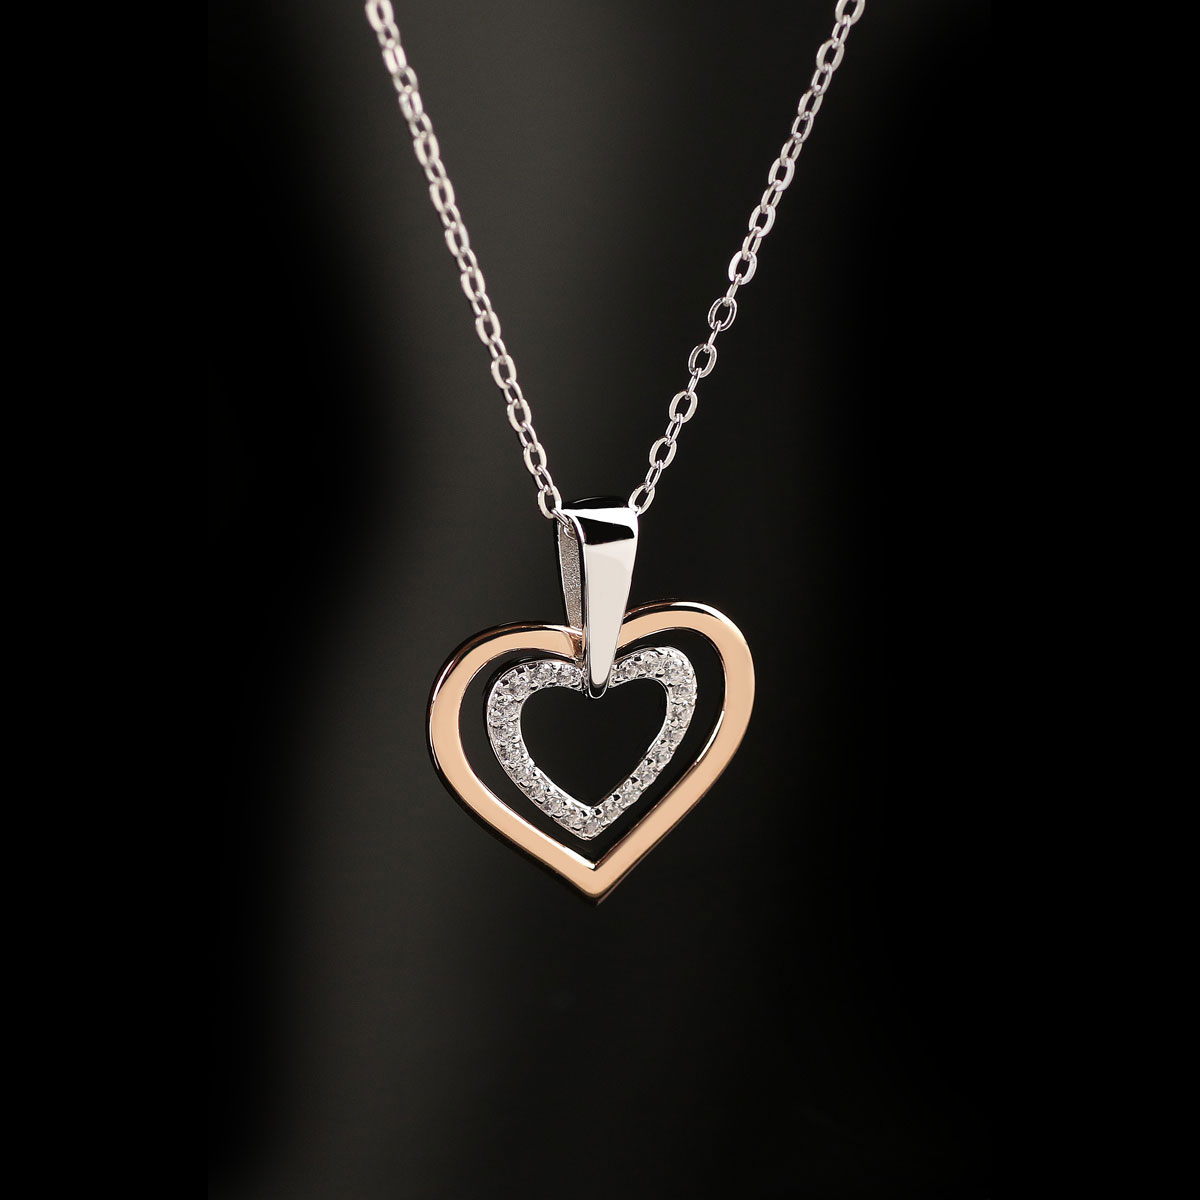 Cashs Ireland, Sterling Silver and Gold Heart in Heart Pendant Necklace